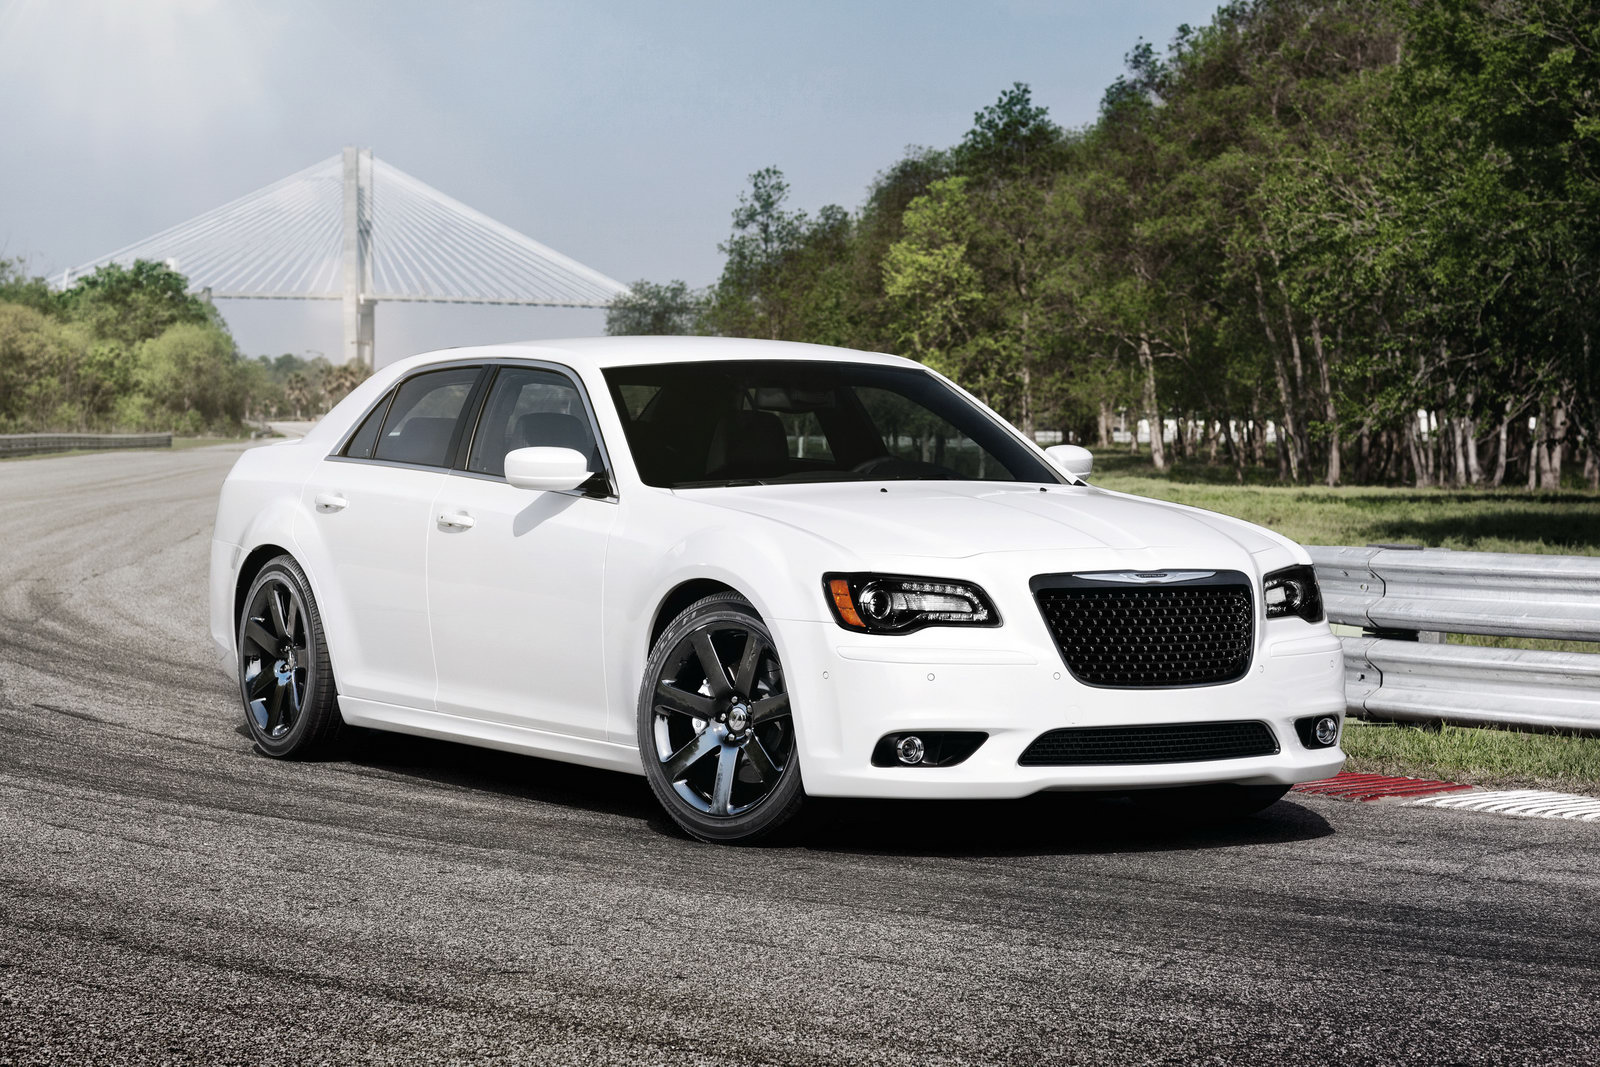 2012 chrysler 300 photos price specifications reviews. Black Bedroom Furniture Sets. Home Design Ideas